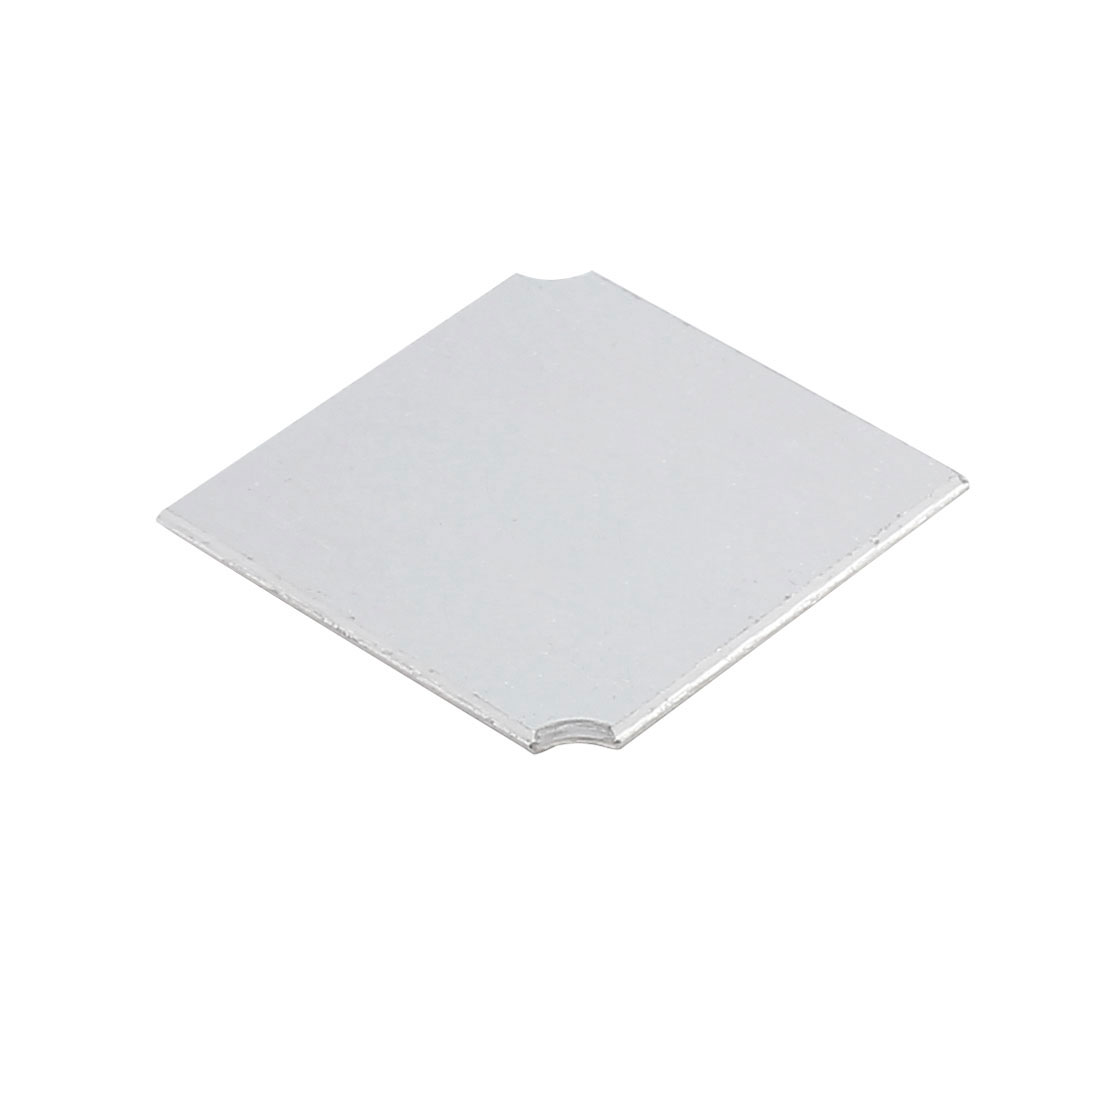 DC 30-36V 10W 19mmx19mm Square COB  Chip High Power Beads Light Neutral White - image 1 de 2